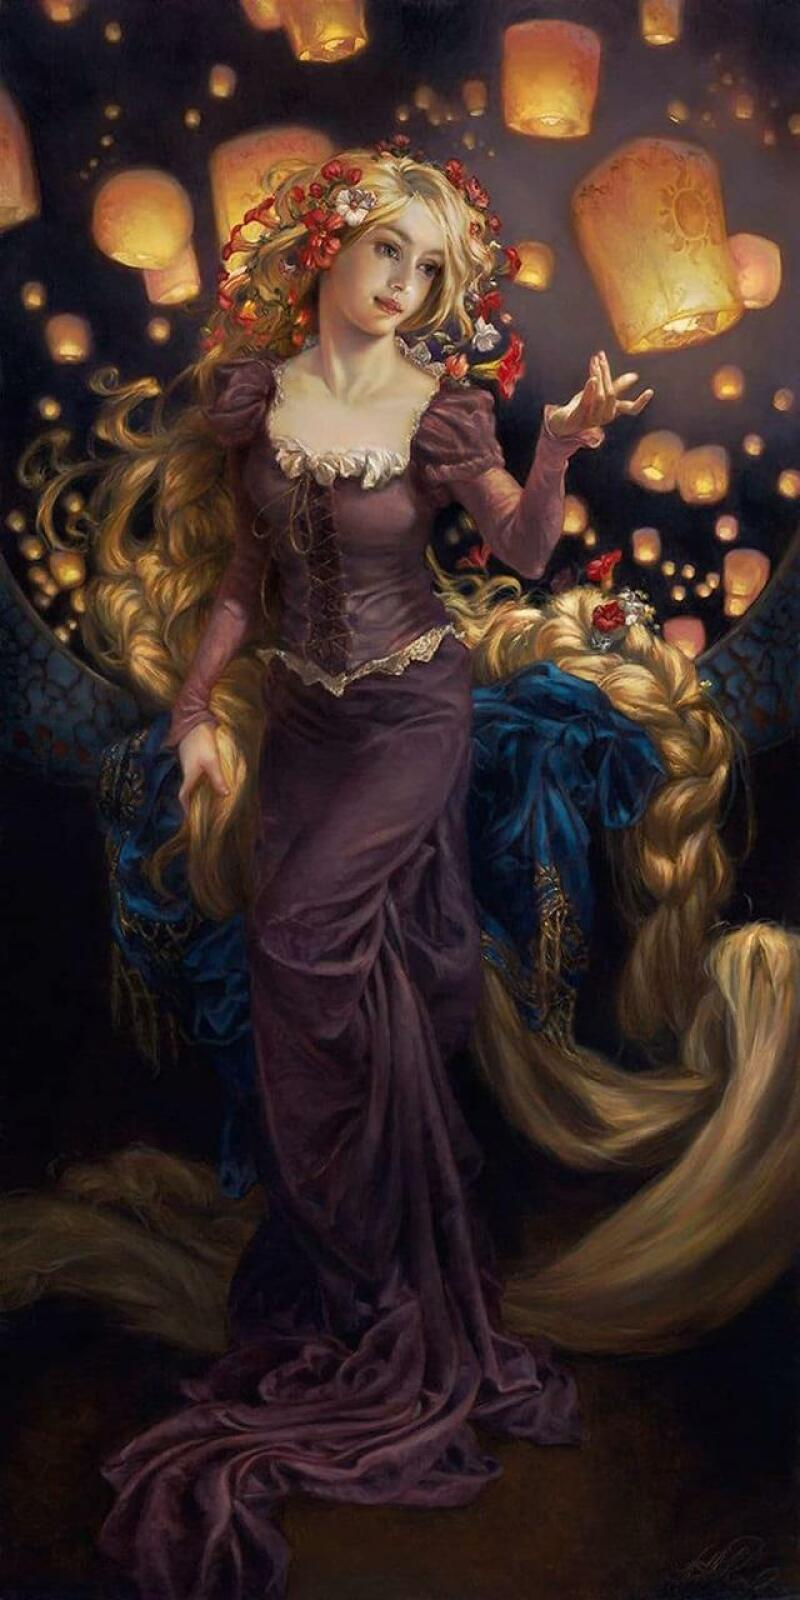 © Heather Theurer